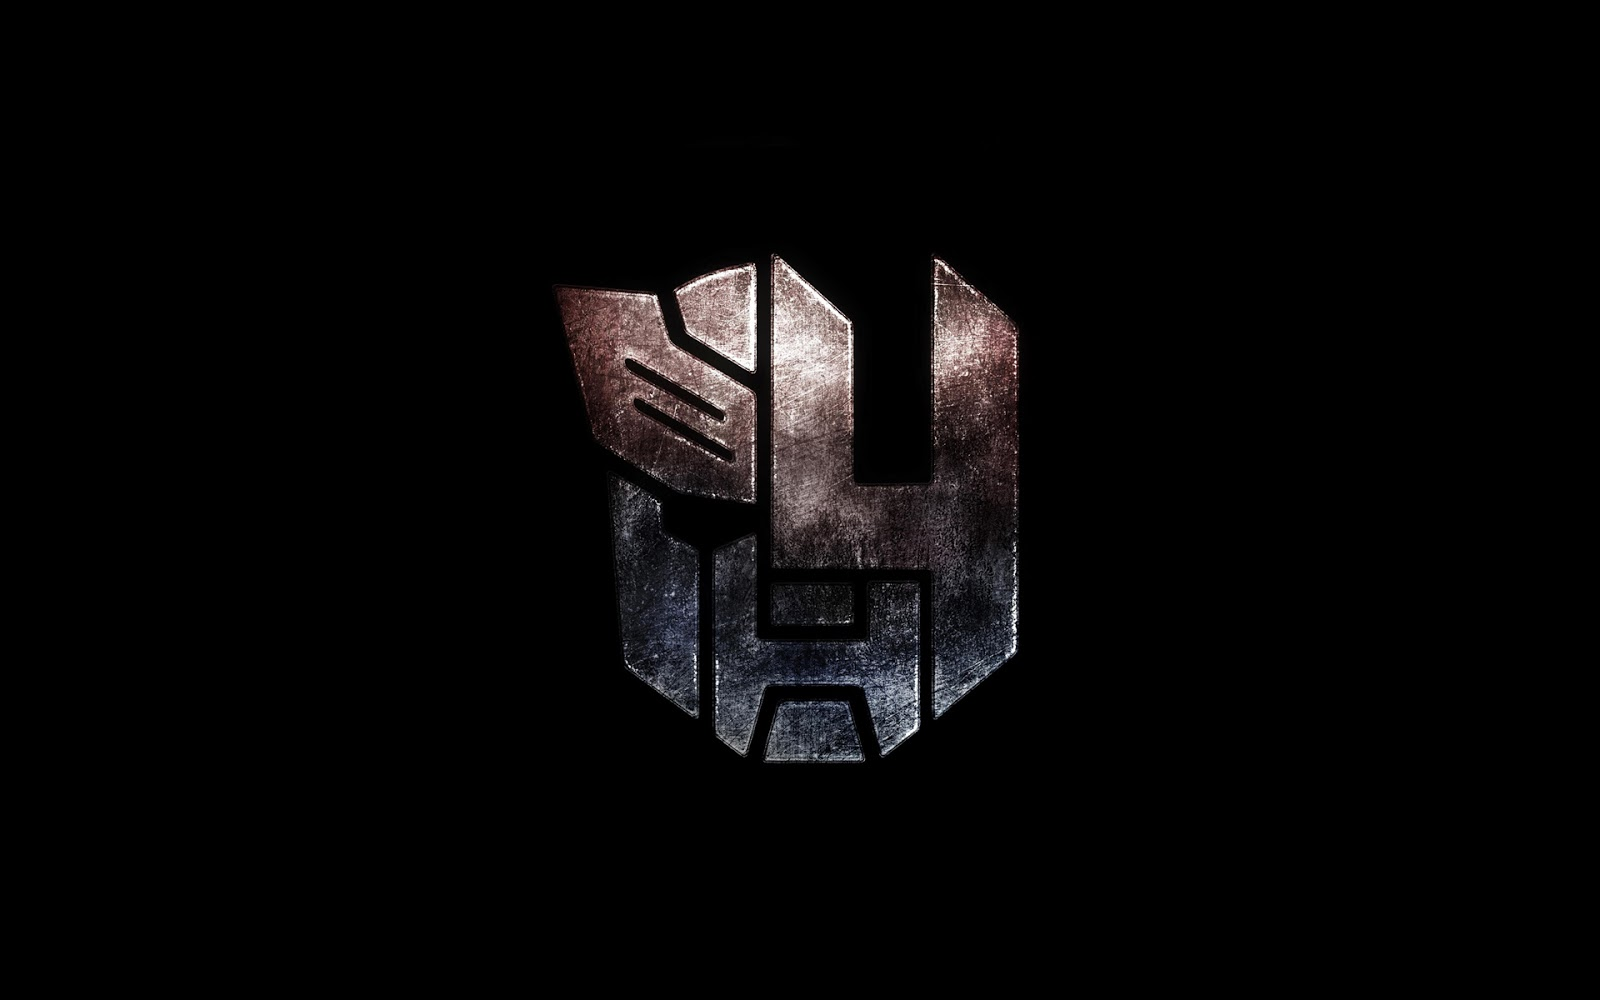 Transformers Age of Extinction Autobots 6q Wallpaper HD 1600x1000